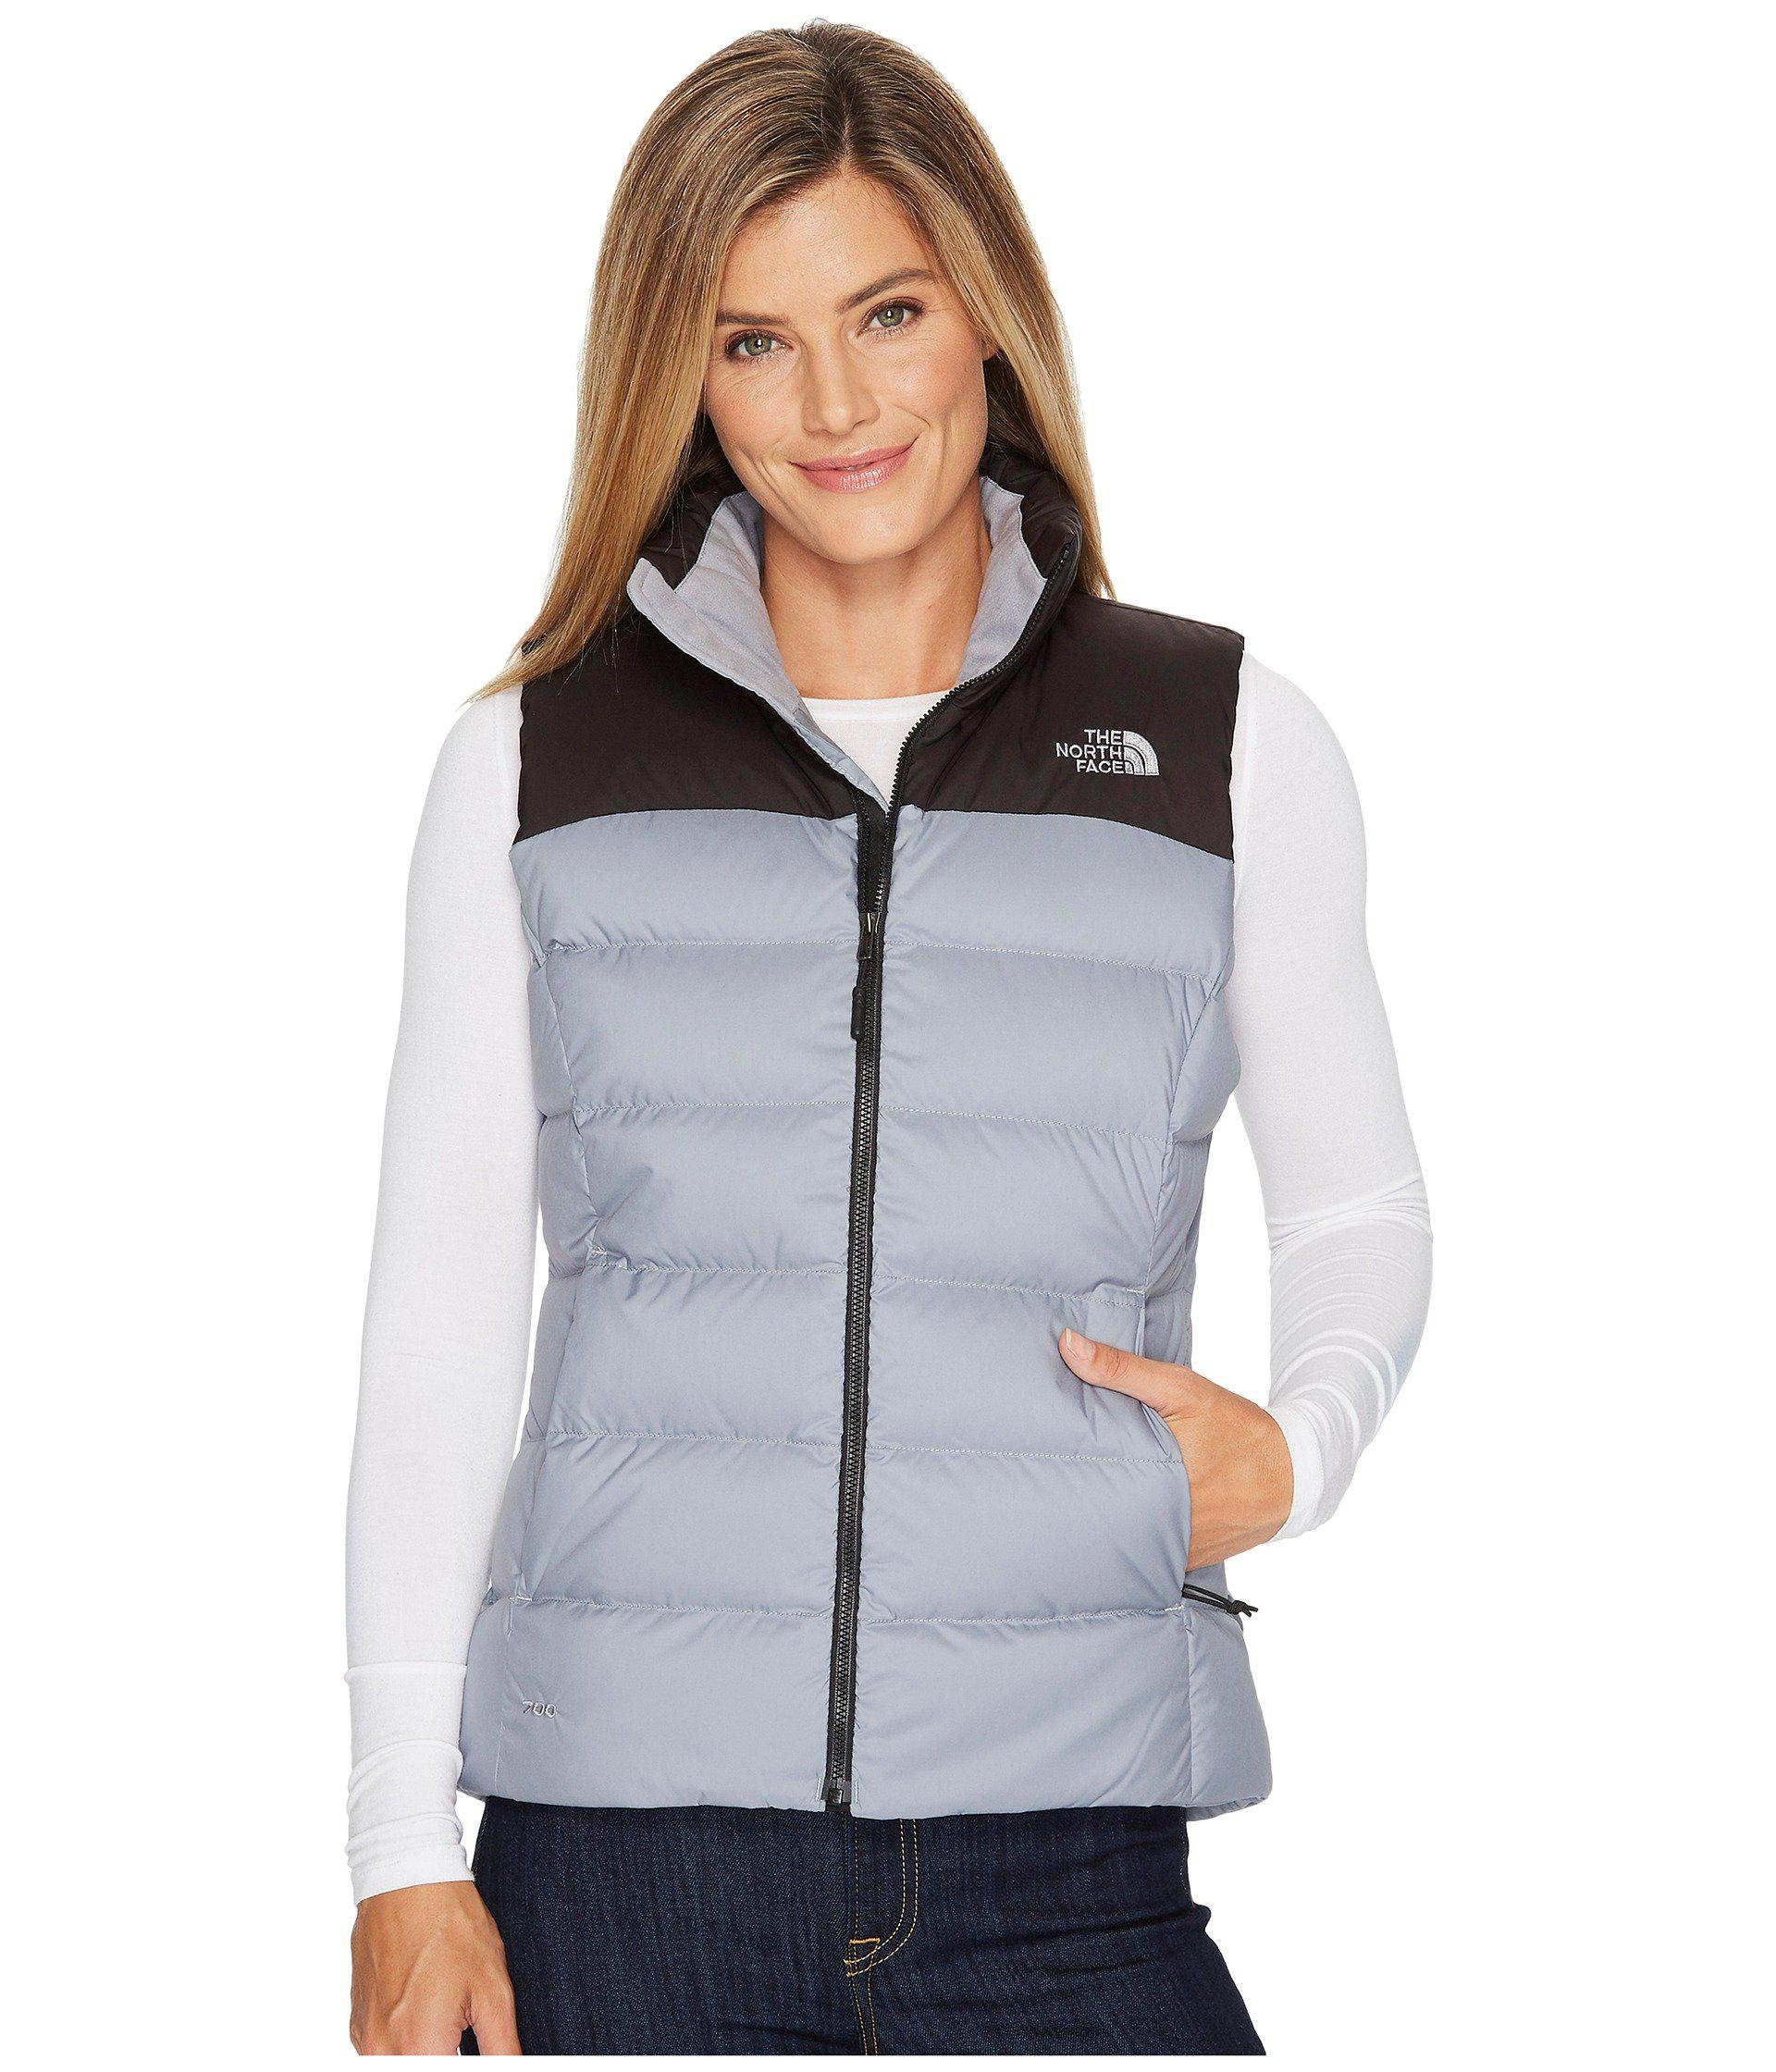 a13b2387ab The North Face - Gray Nuptse Vest (tnf White tnf Black) Women s Jacket. View  fullscreen